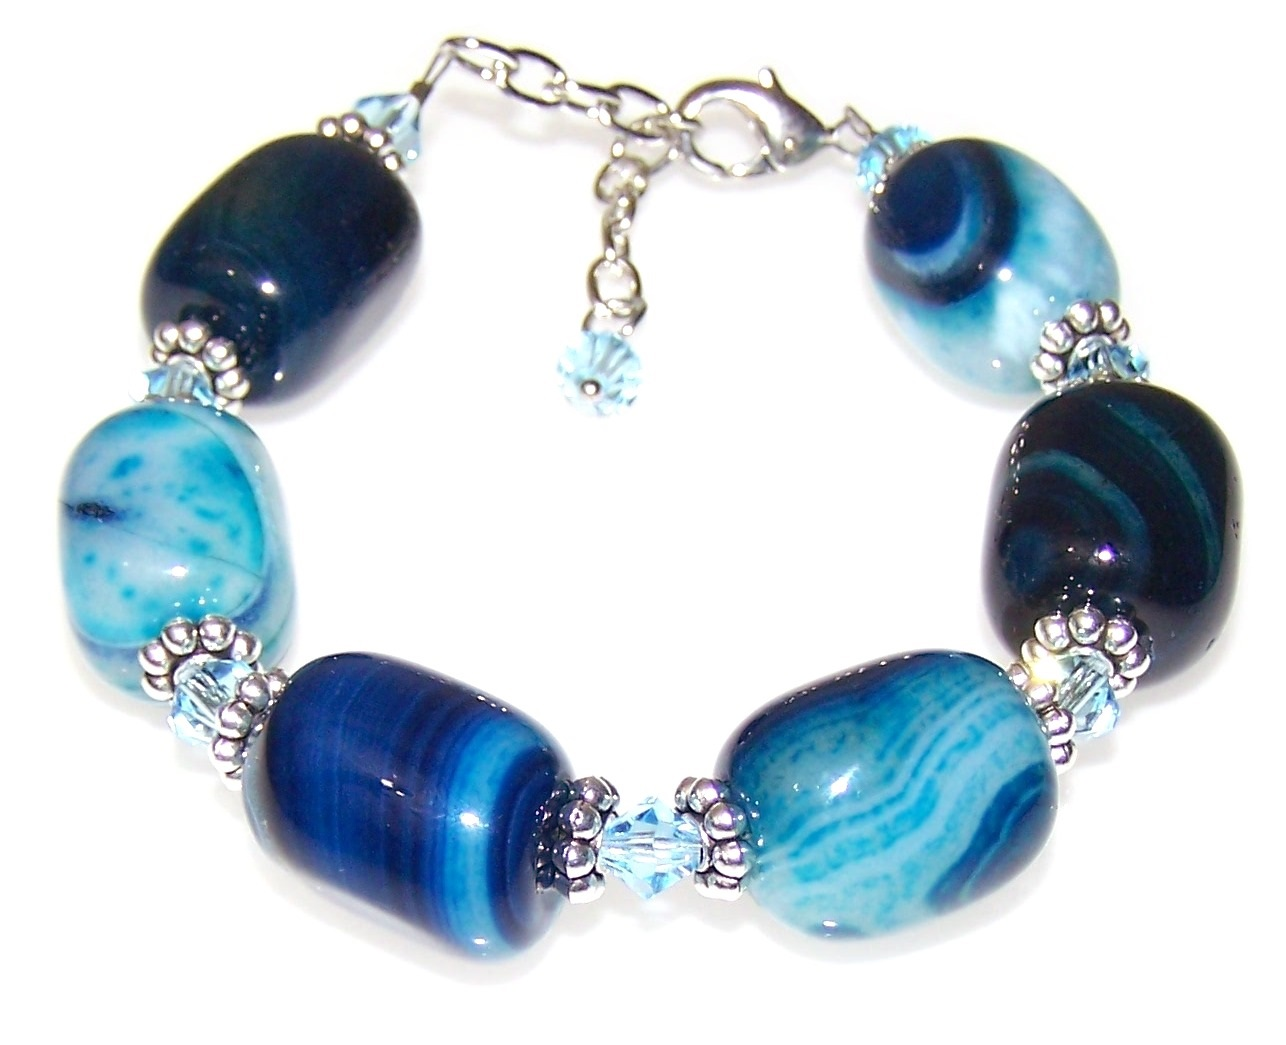 Ocean Currents Bracelet Free Beaded Jewelry Making Pattern